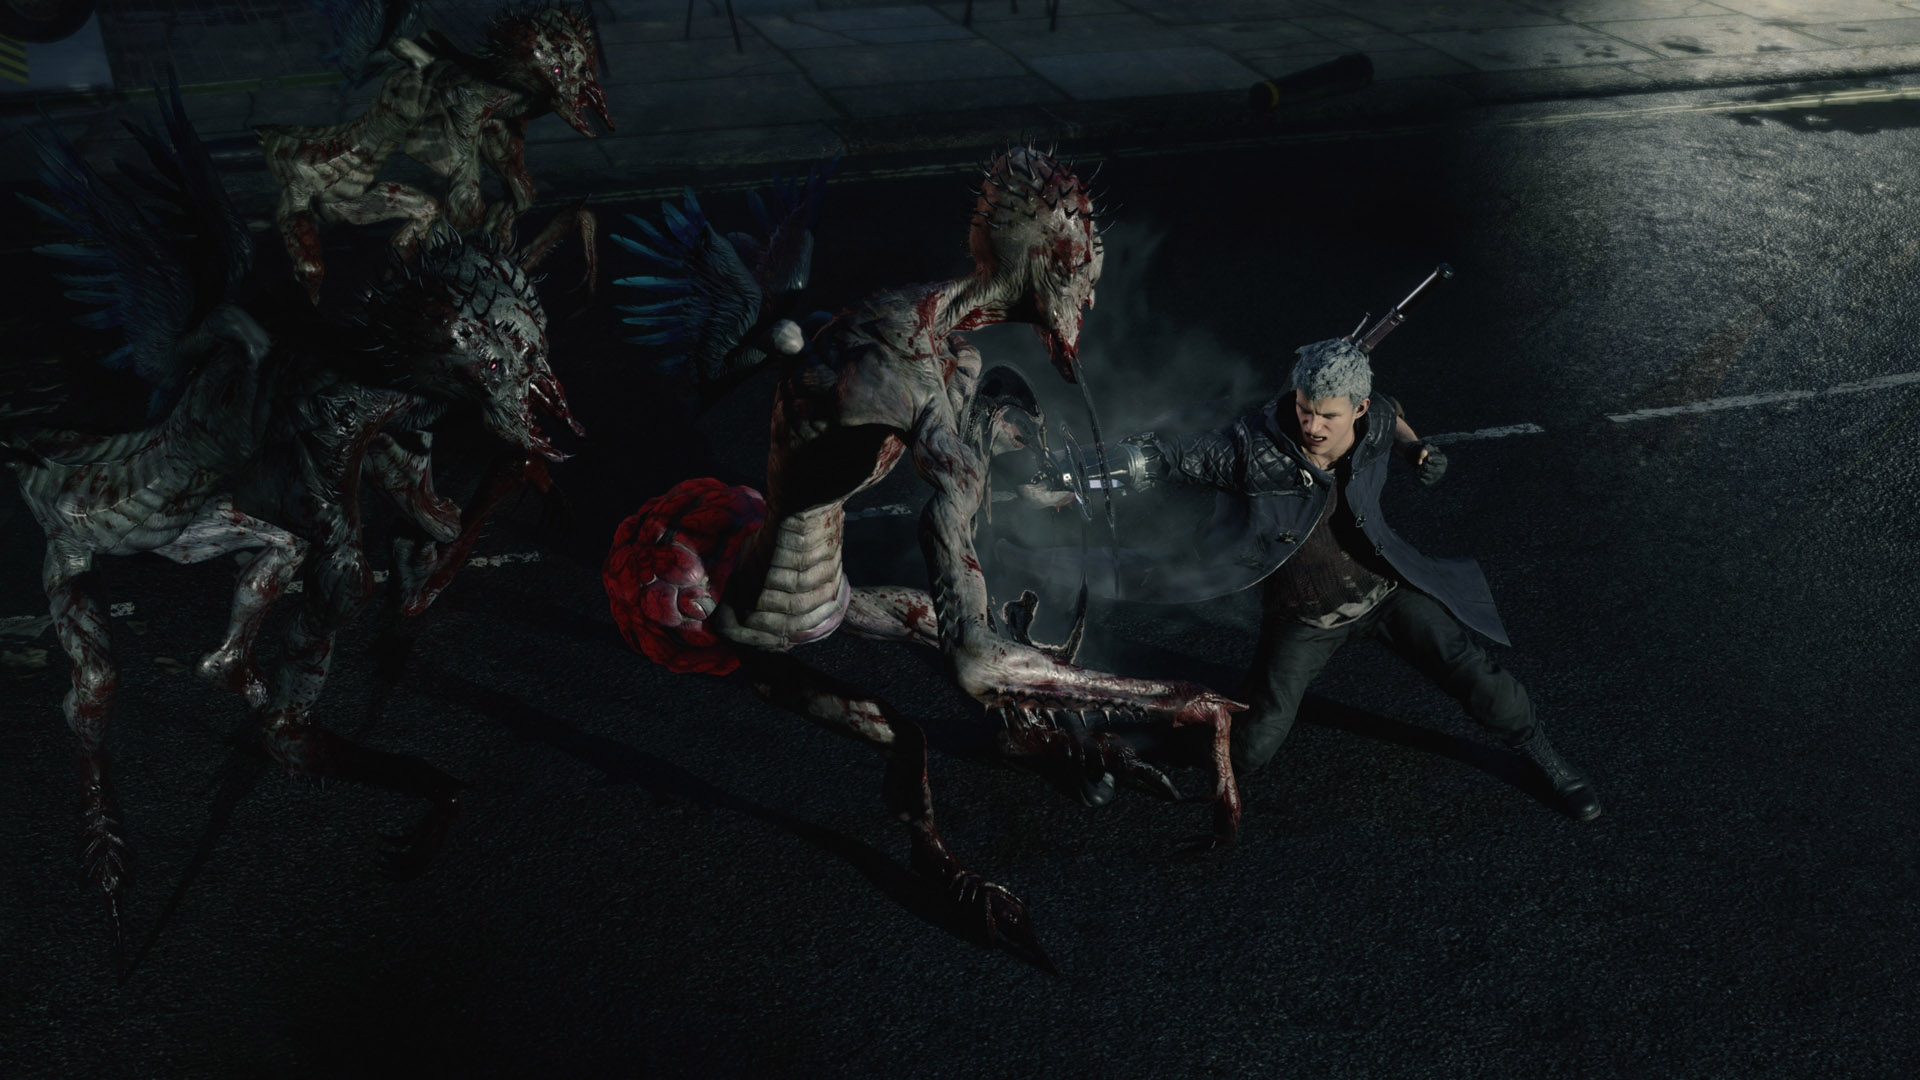 Скриншот *Devil May Cry 5 - Deluxe Edition [PS4] 6.72 / 7.02 / 7.55 [EUR] (2019) [Русский] (v1.08)*